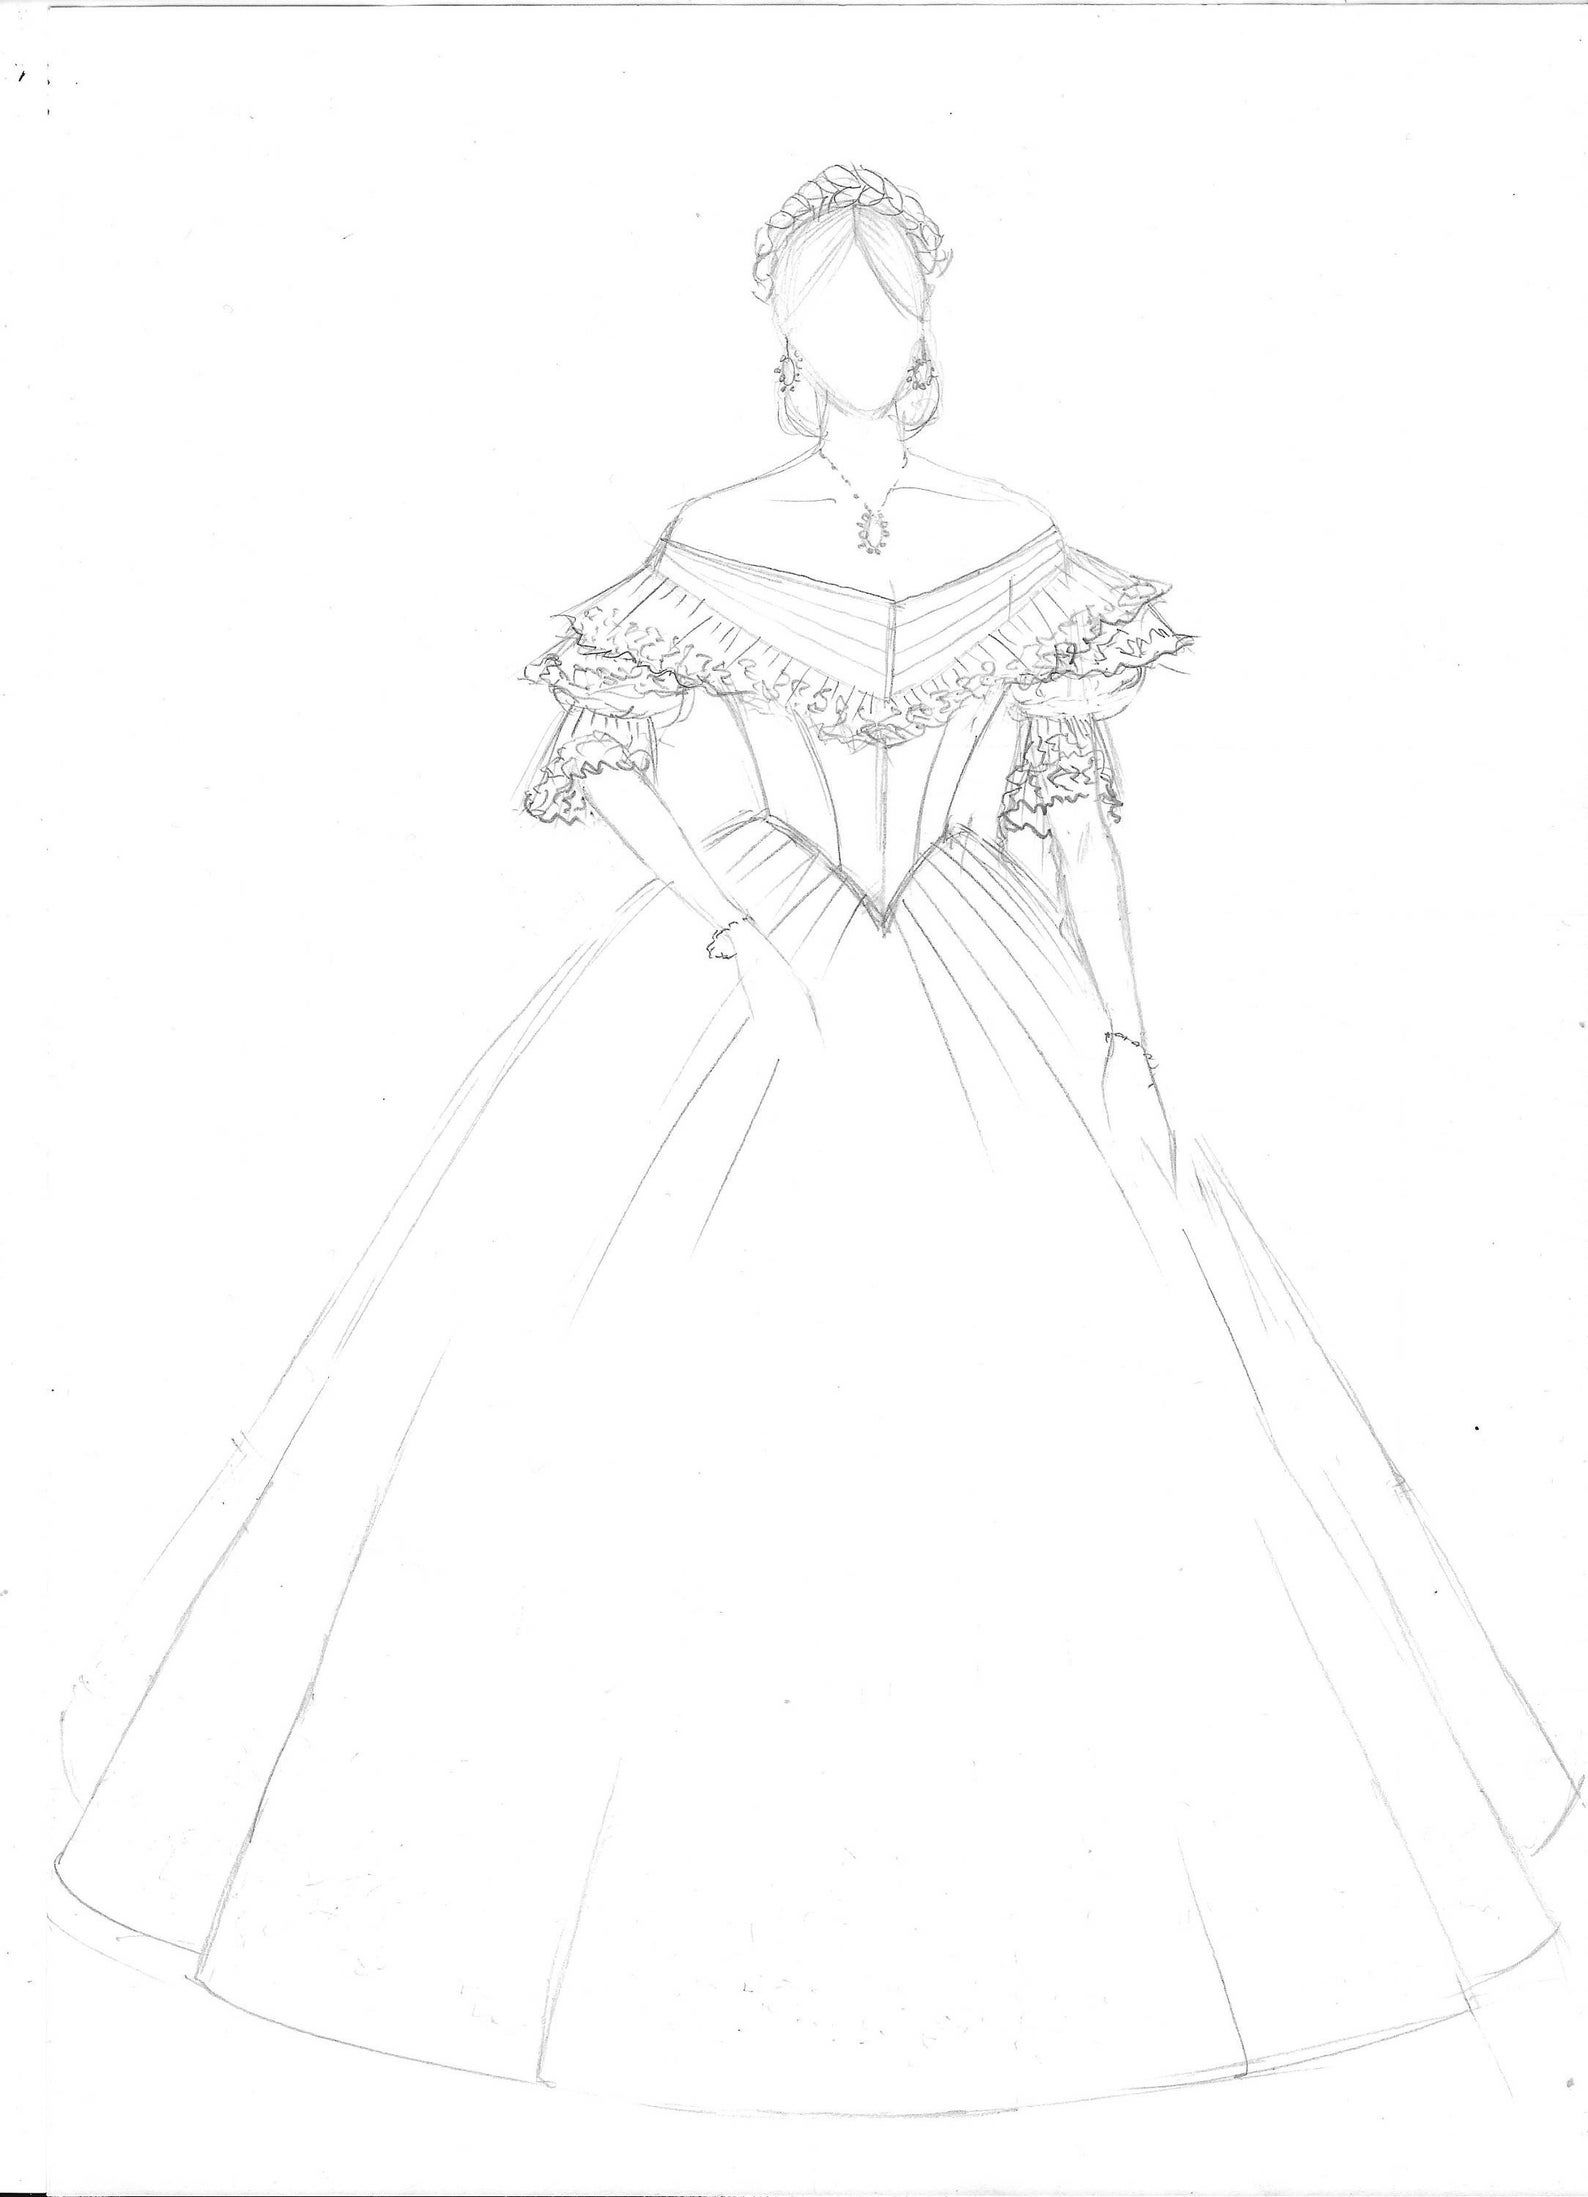 Victorian Prom Dress Victorian Ball Gown Mauve Taffeta White Lace And Green Ribbons With Bertha Model Cinzia 1860 Dress Design Drawing Fashion Drawing Dresses Dress Design Sketches [ 2197 x 1588 Pixel ]